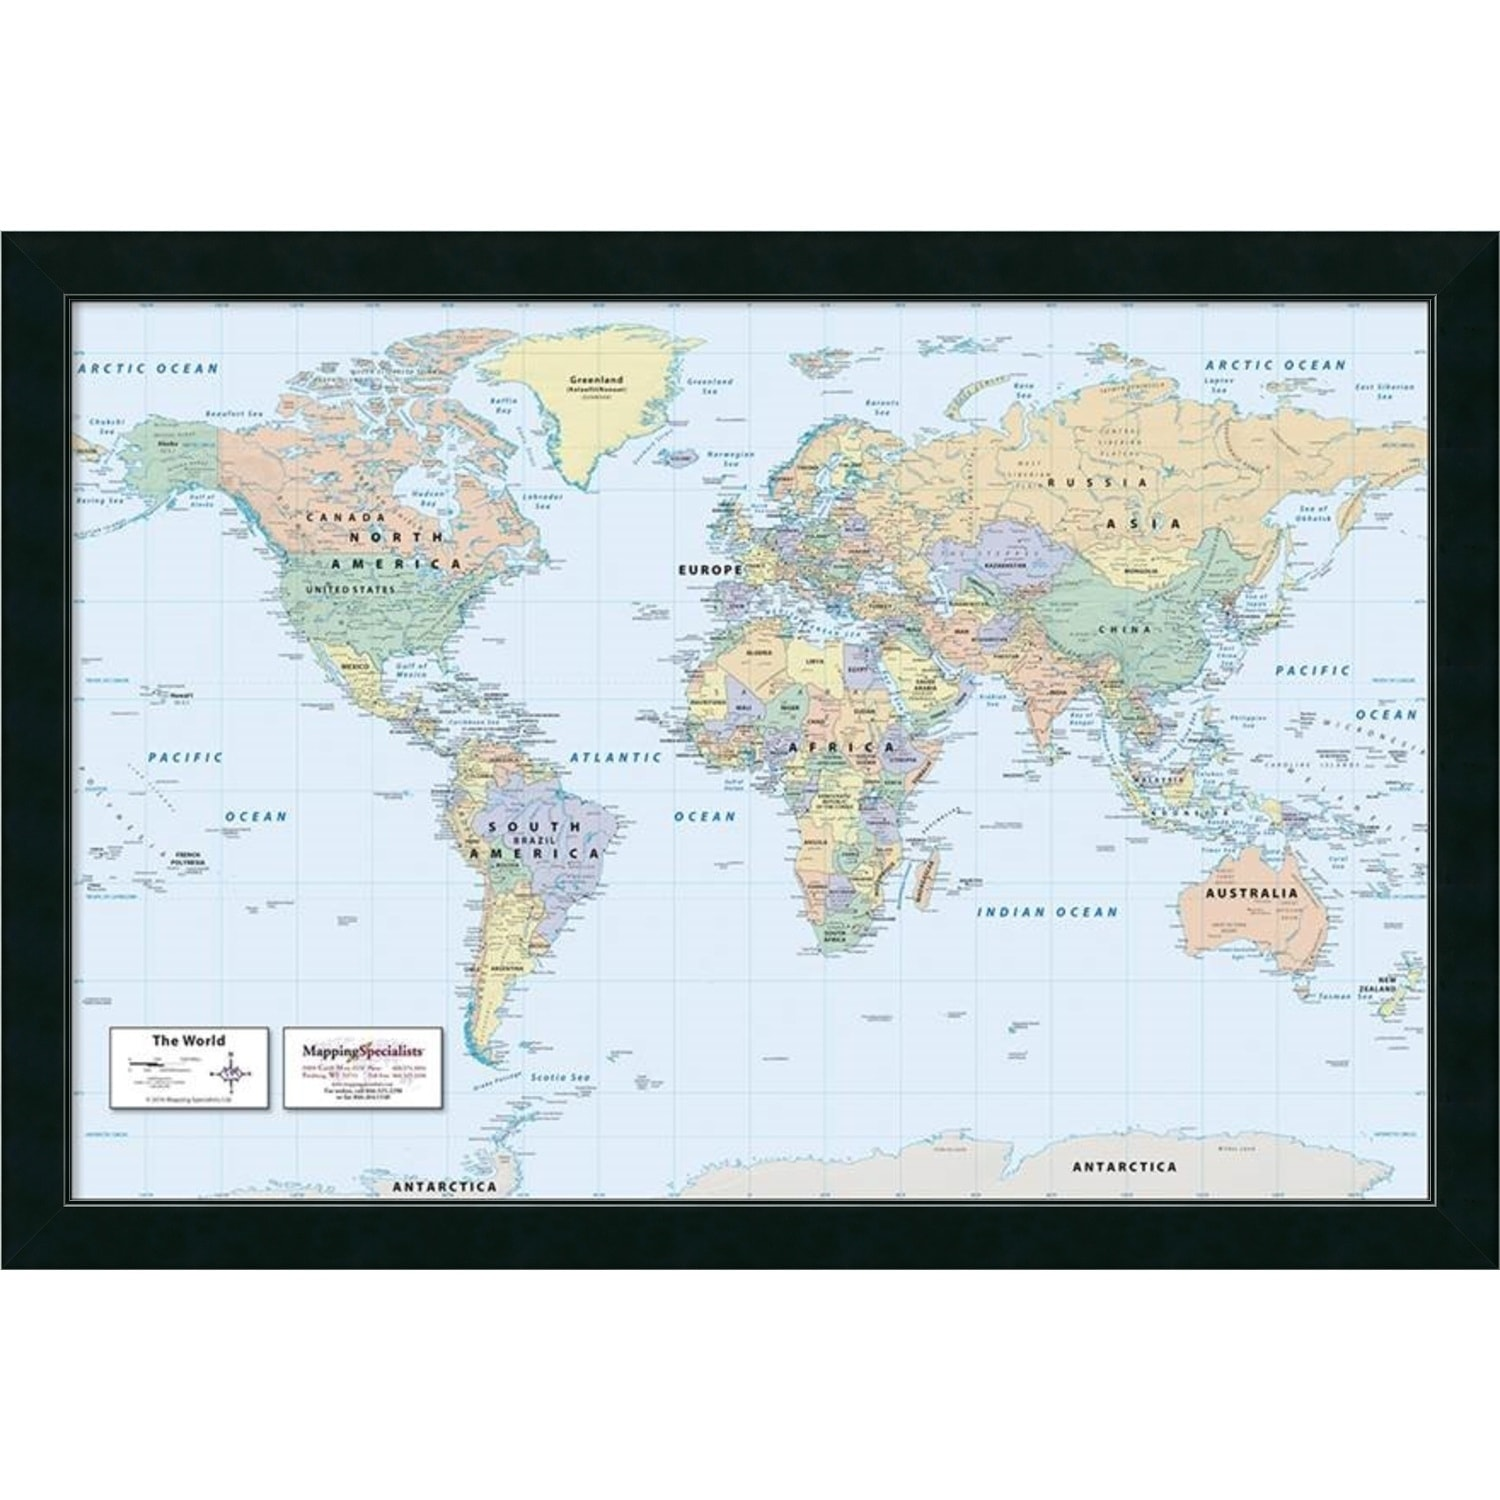 Framed art print 2016 world map classic political by mapping framed art print 2016 world map classic political by mapping specialists free shipping today overstock 19069559 gumiabroncs Choice Image